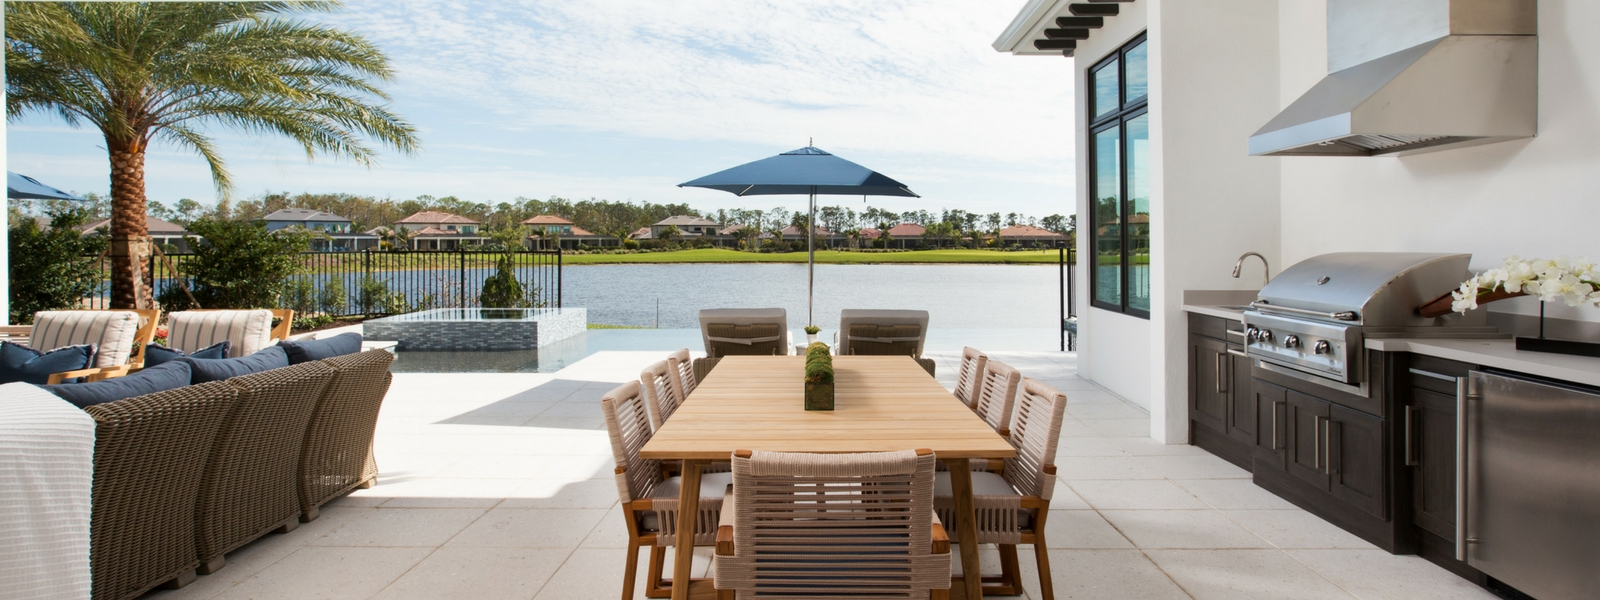 Trends for Florida Outdoor Kitchens